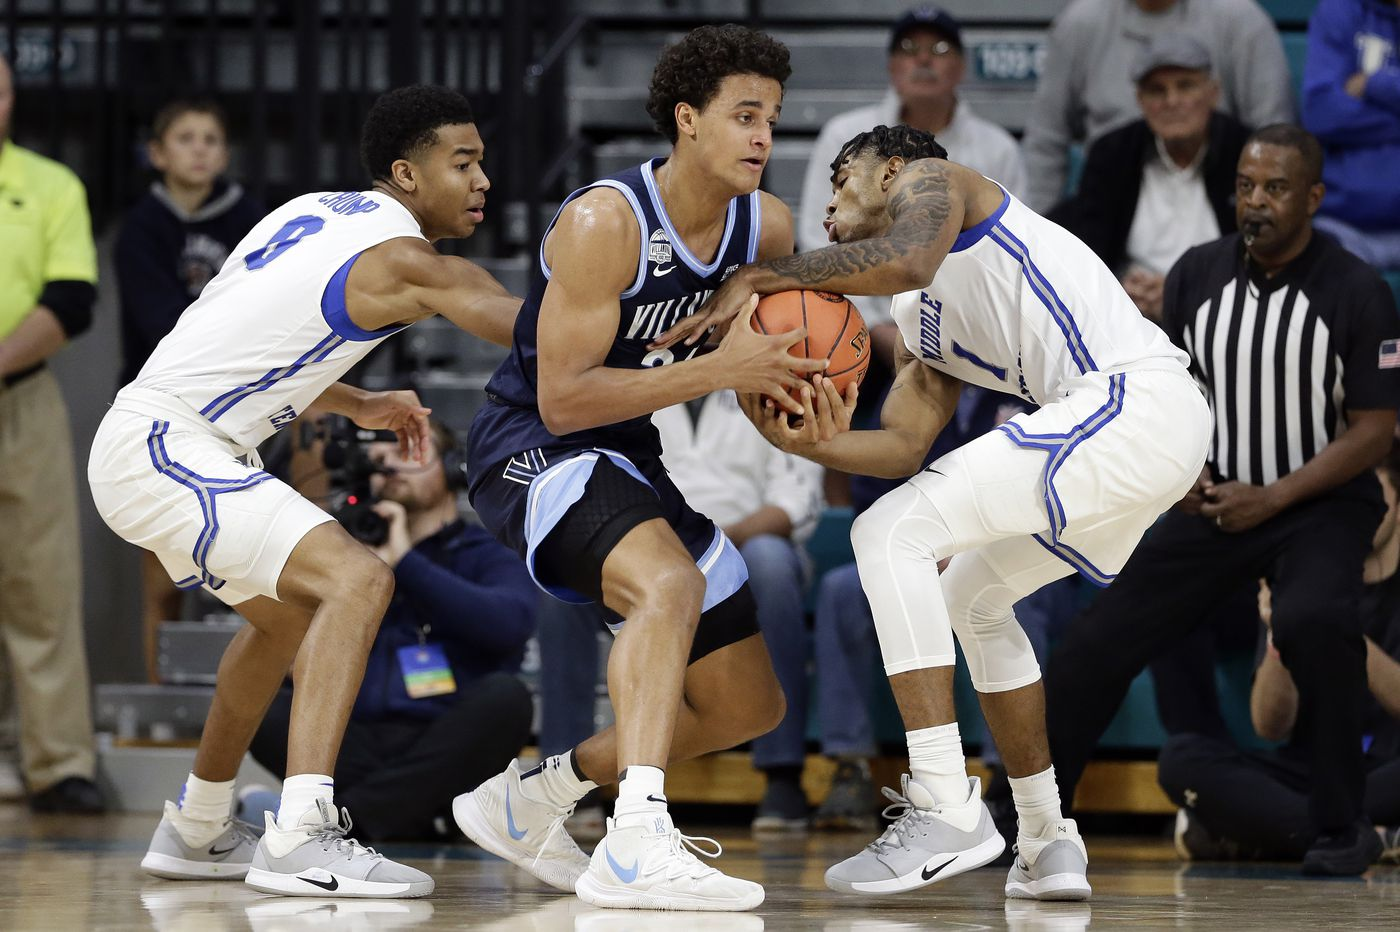 Villanova 98, Middle Tennessee 69: Wildcats begin S.C. tourney with easy win